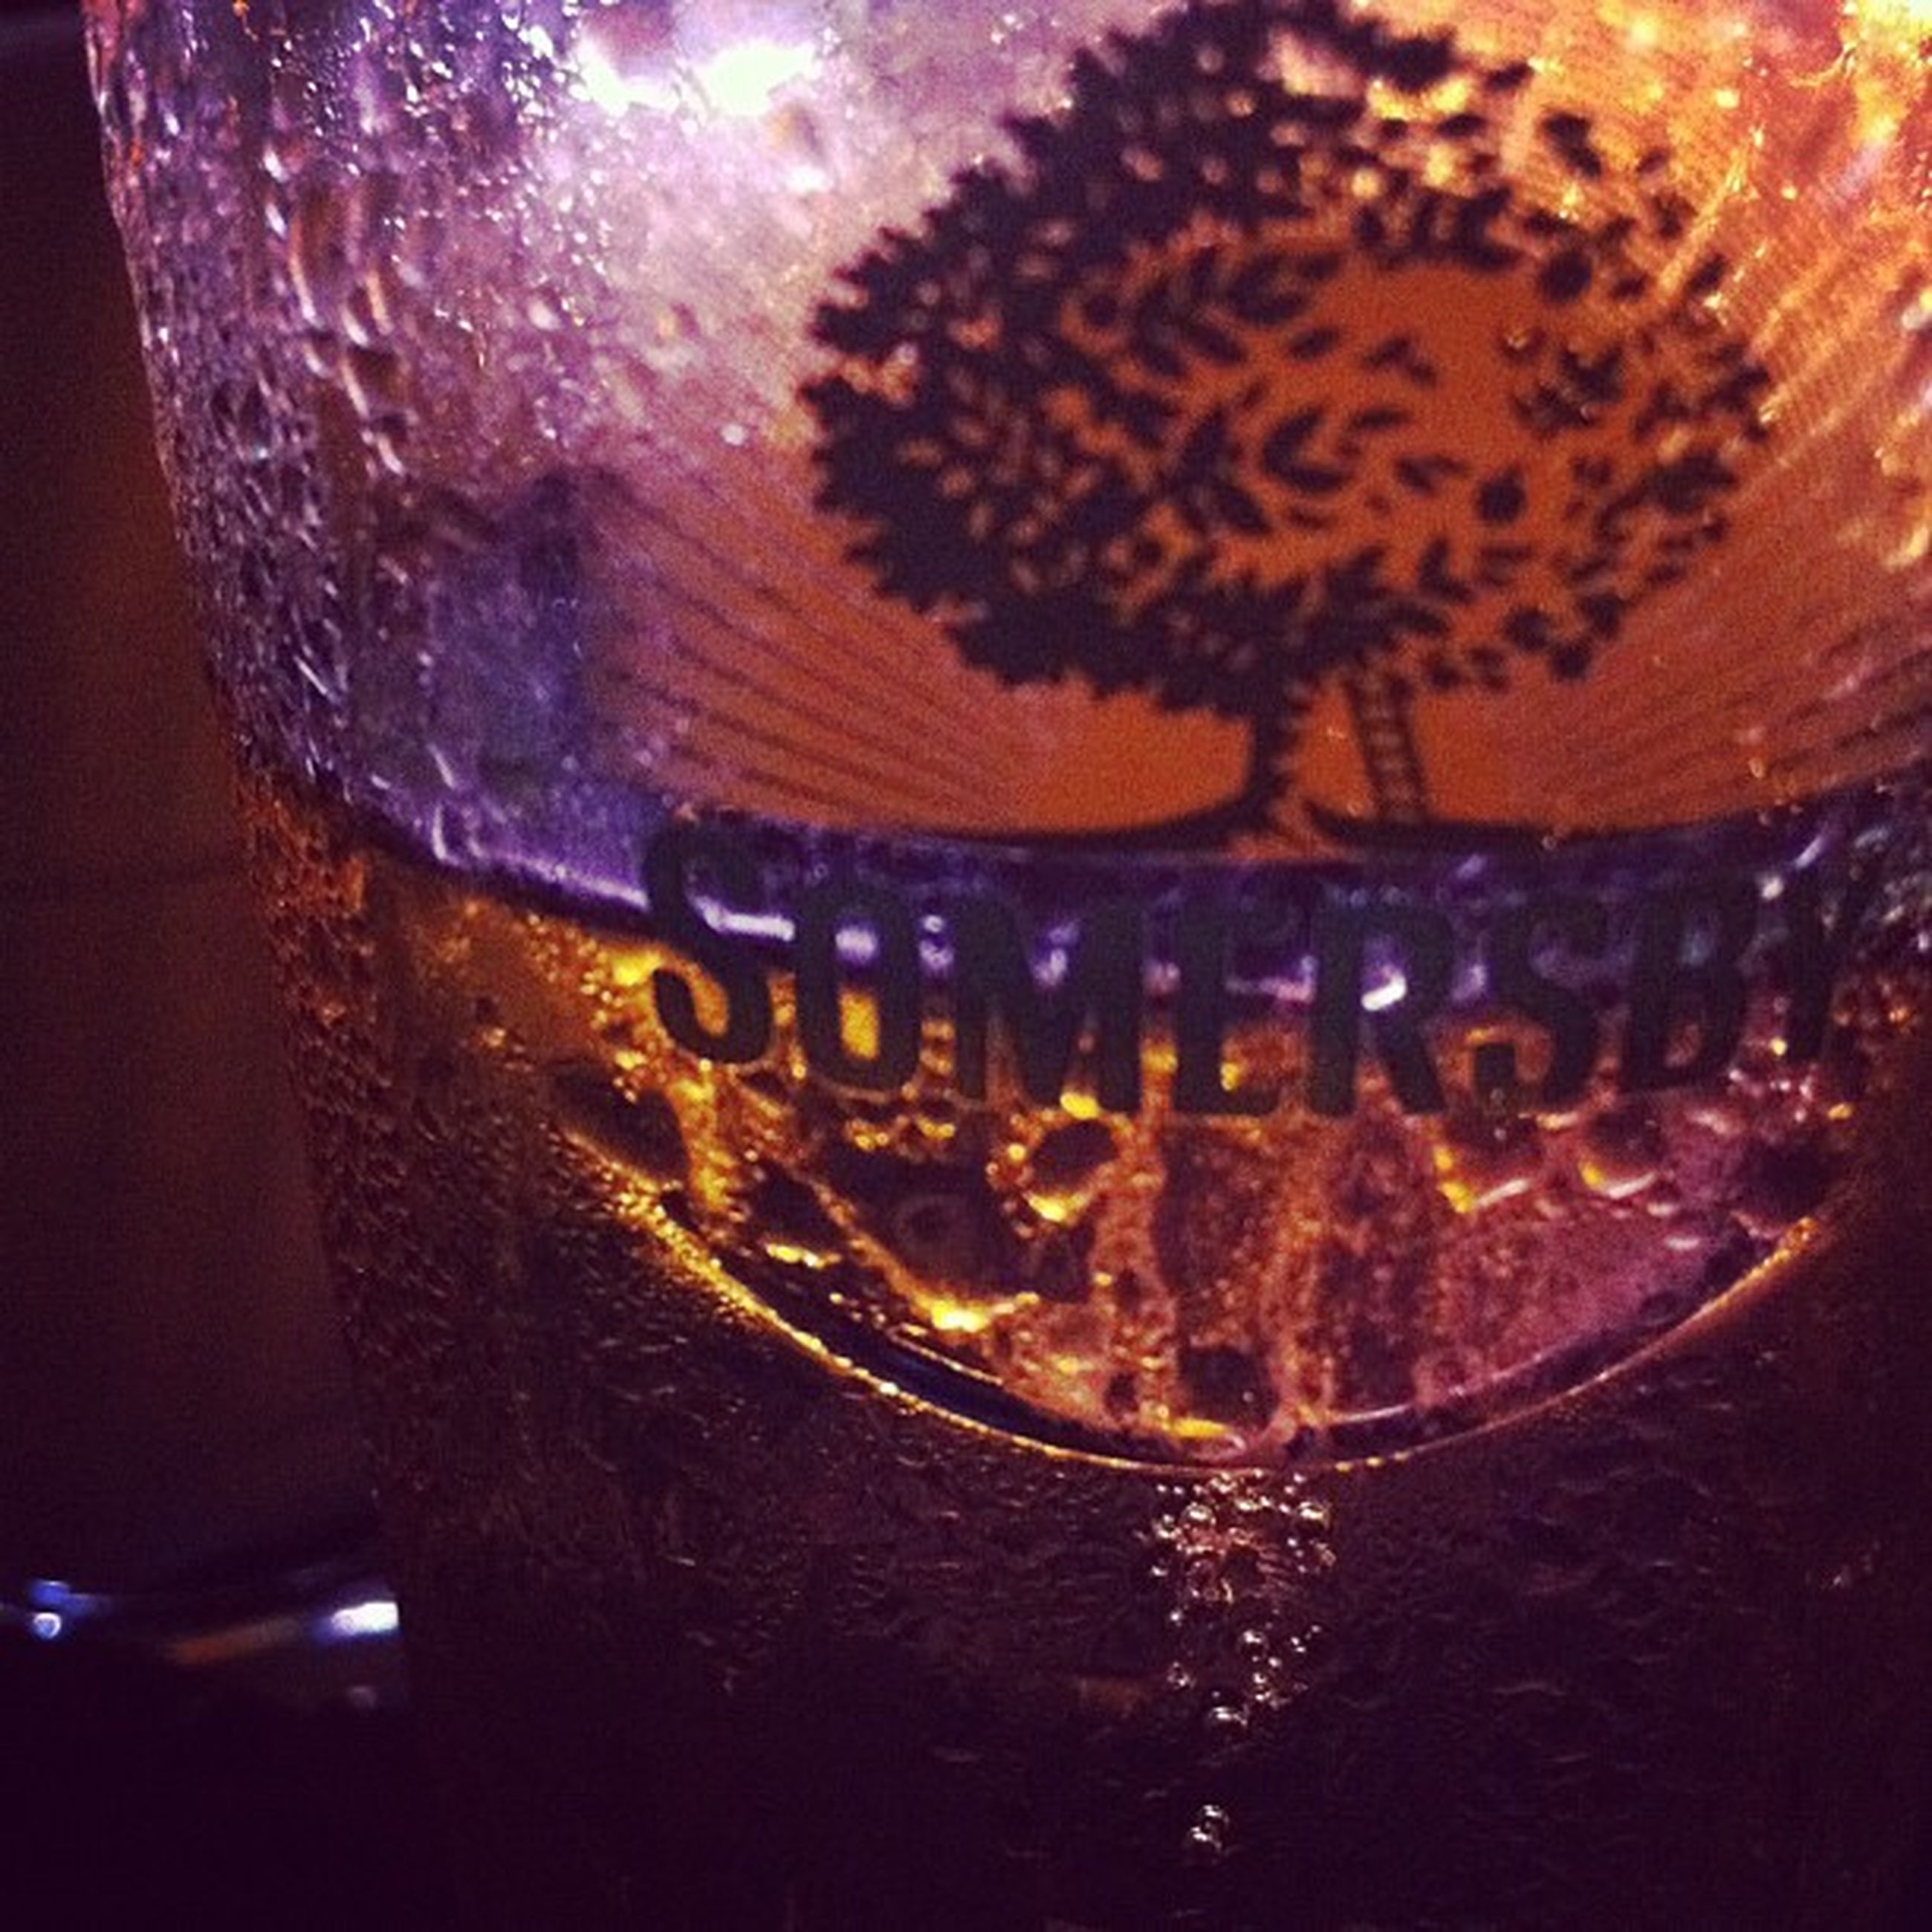 indoors, close-up, glass - material, illuminated, transparent, focus on foreground, celebration, drink, decoration, table, drinking glass, no people, night, freshness, selective focus, lighting equipment, refreshment, glass, reflection, water